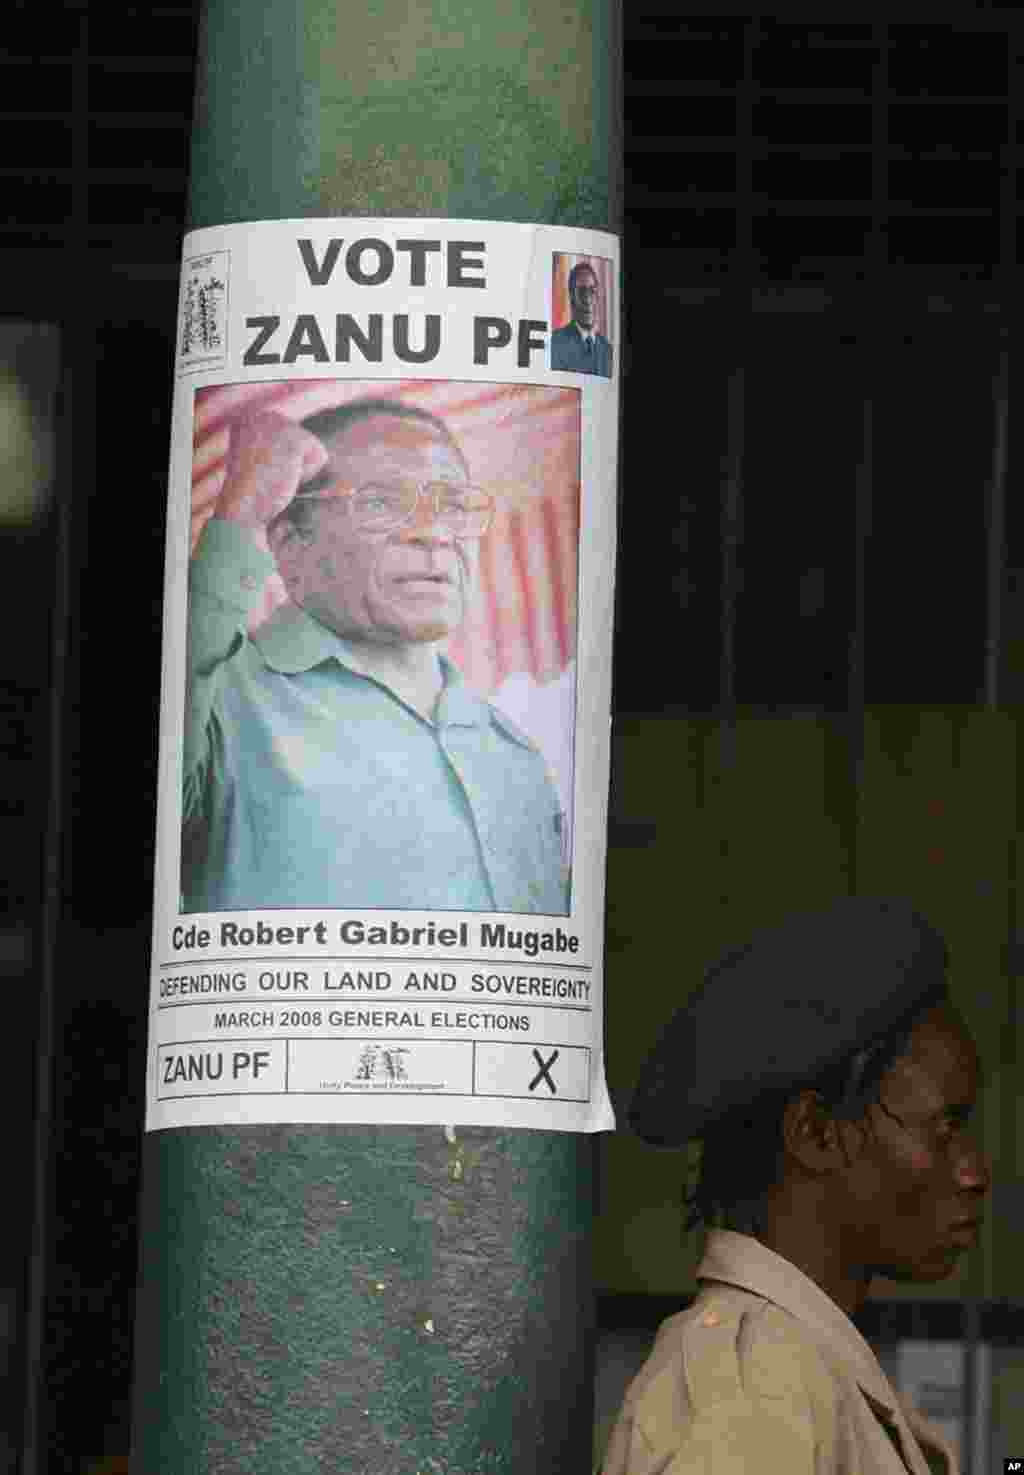 A security guard stands next to a President Robert Mugabe campaign poster in Harare, Zimbabwe, Tuesday, February, 26, 2008.